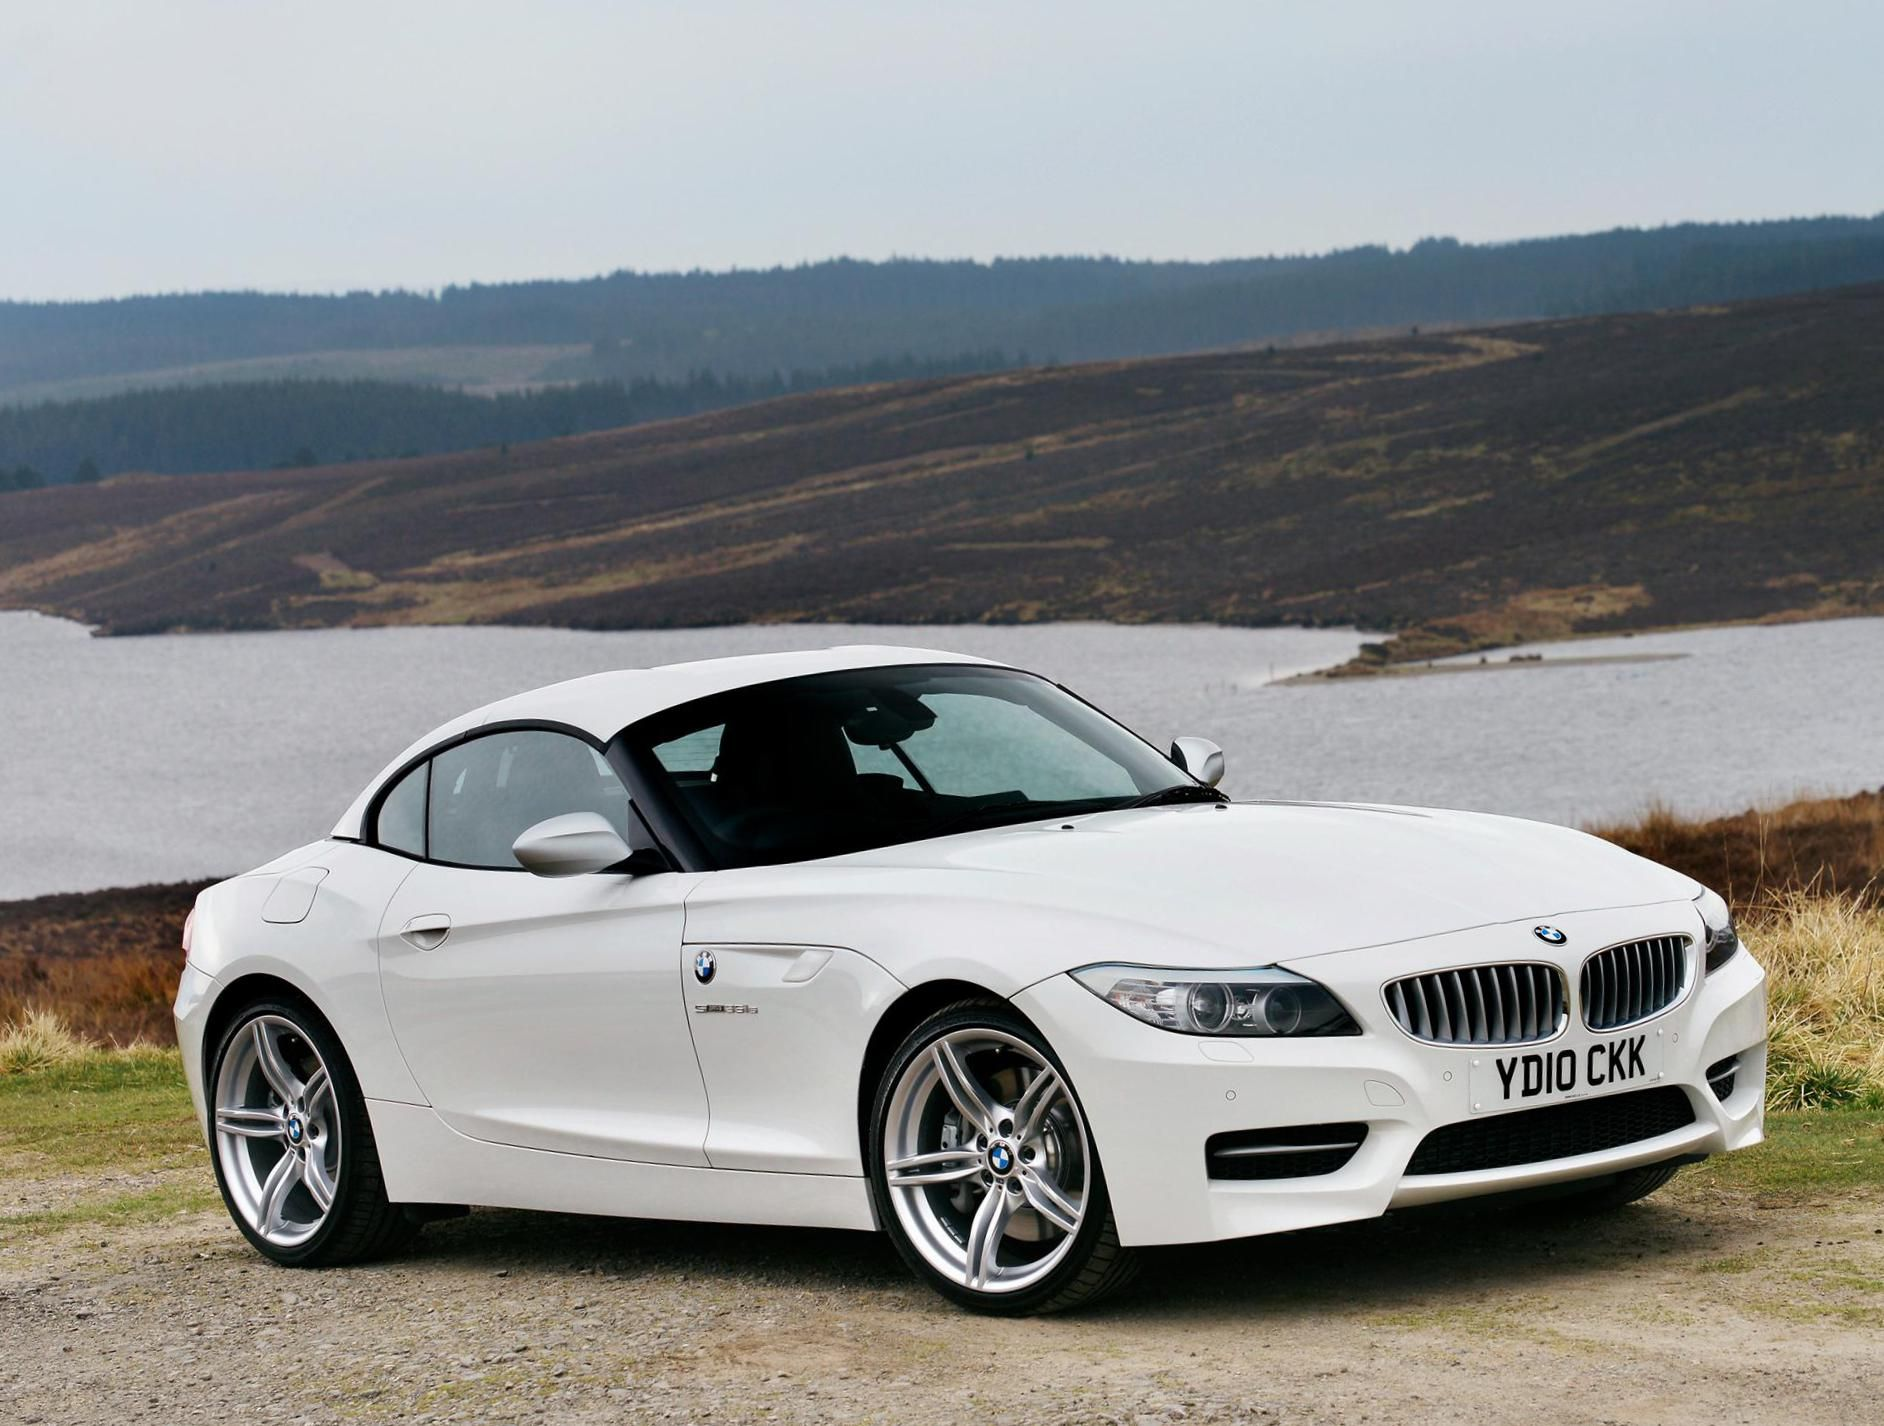 Pin By Mike Mouw On Autos Pinterest Bmw Bmw Z4 And